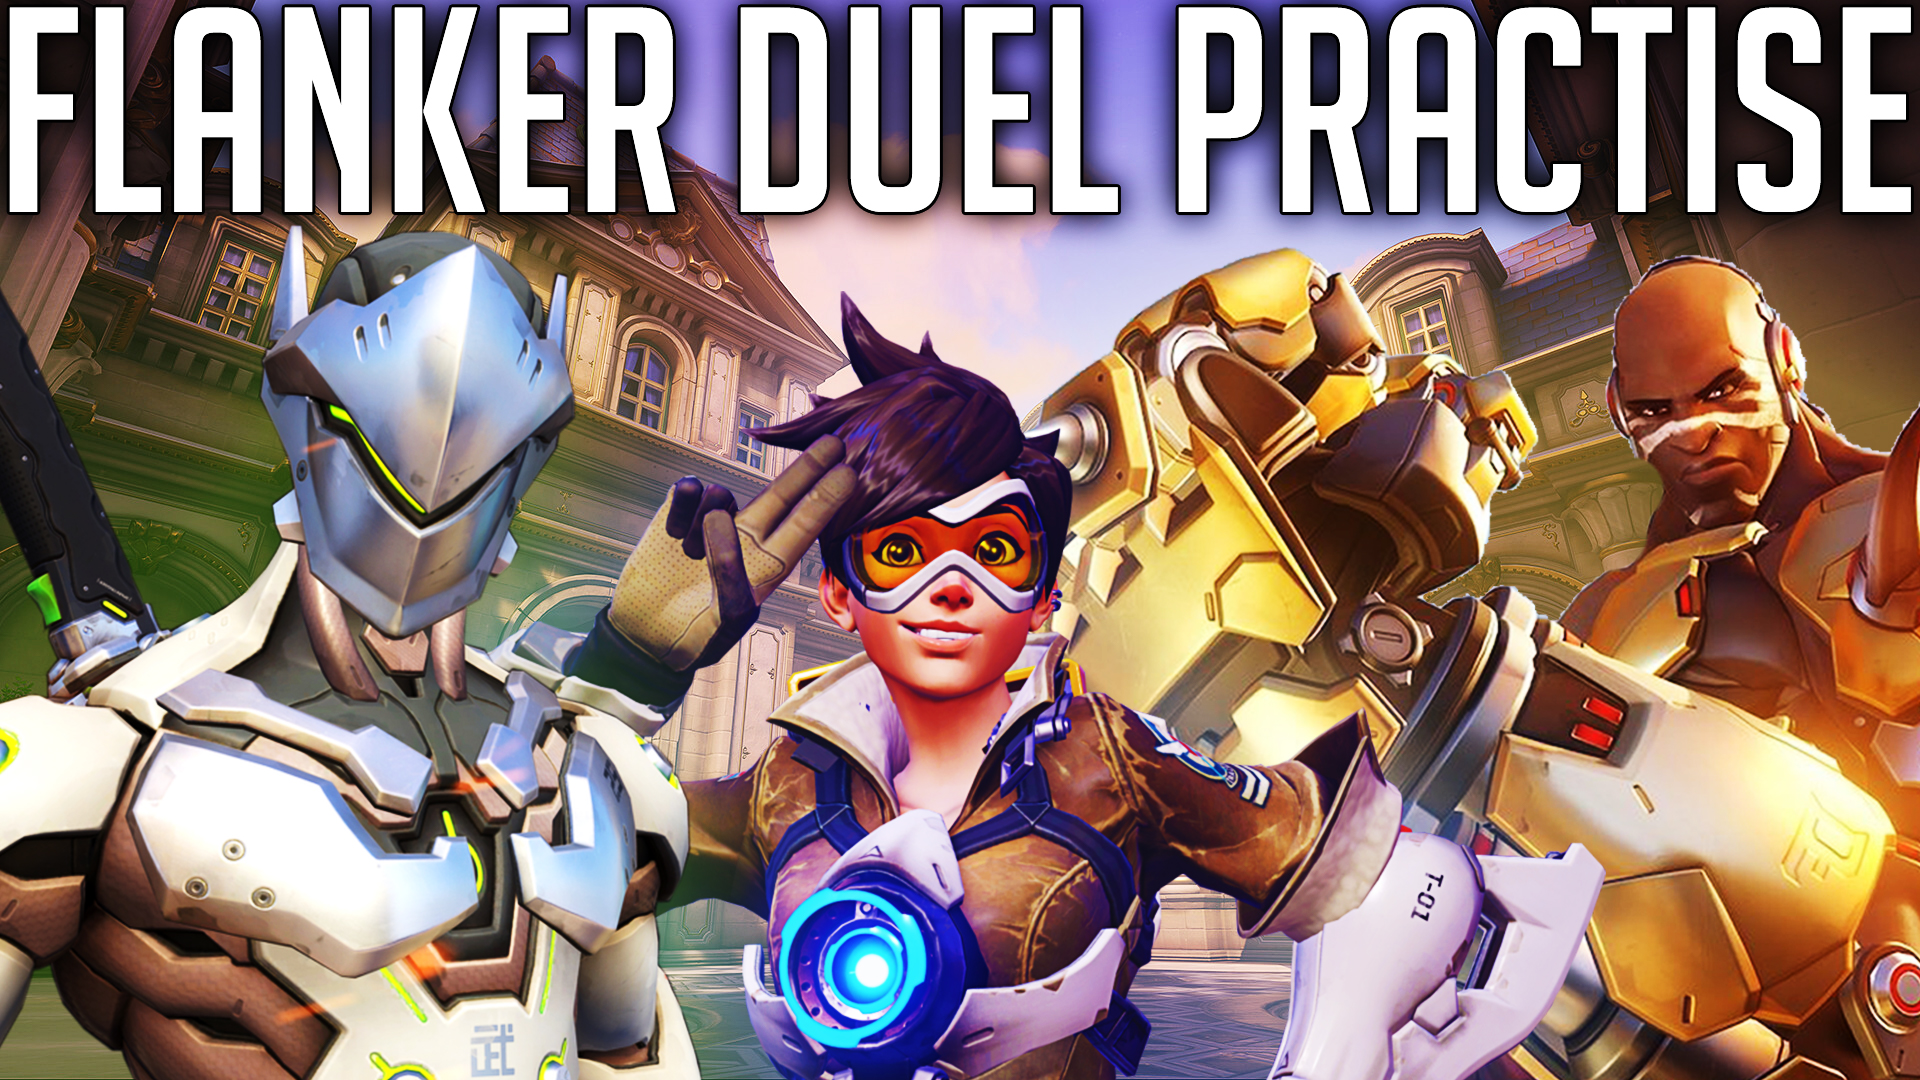 Thumbnail for Flanker Duel Practise (Genji, Tracer and Doomfist)